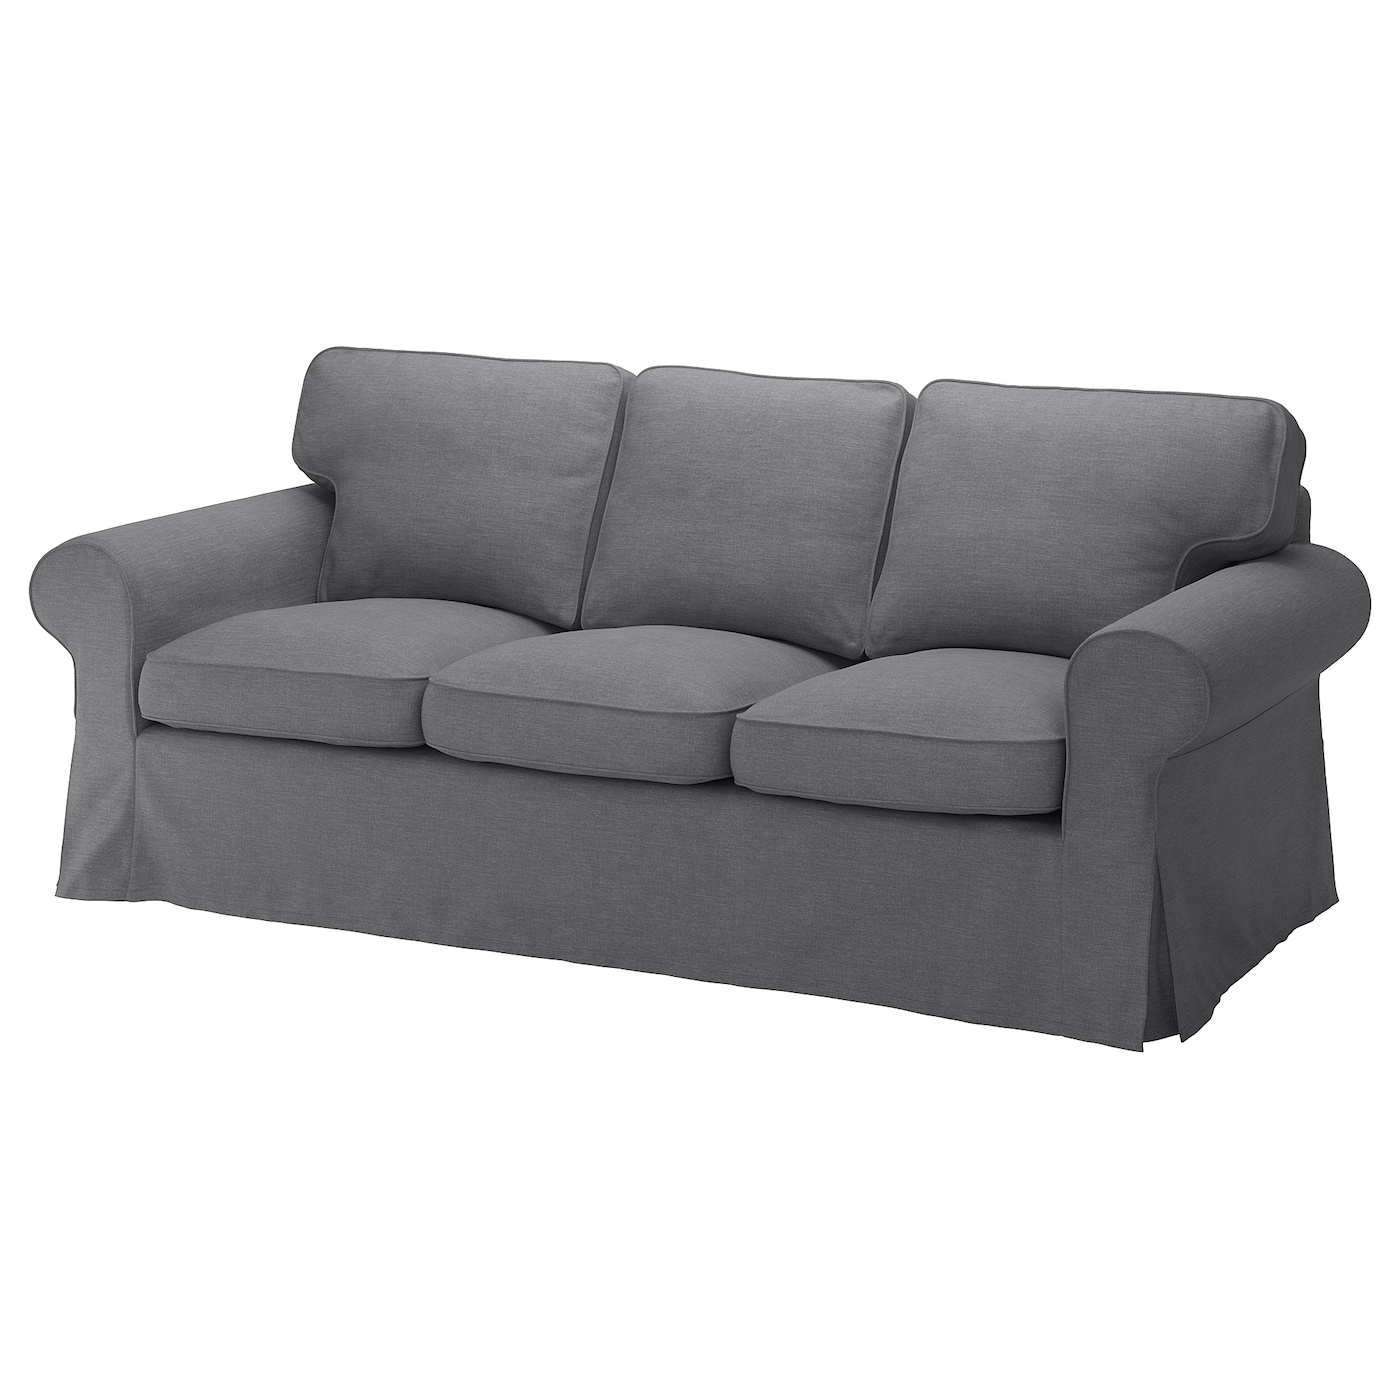 ektorp-three-seat-sofa__0728518_PE736345